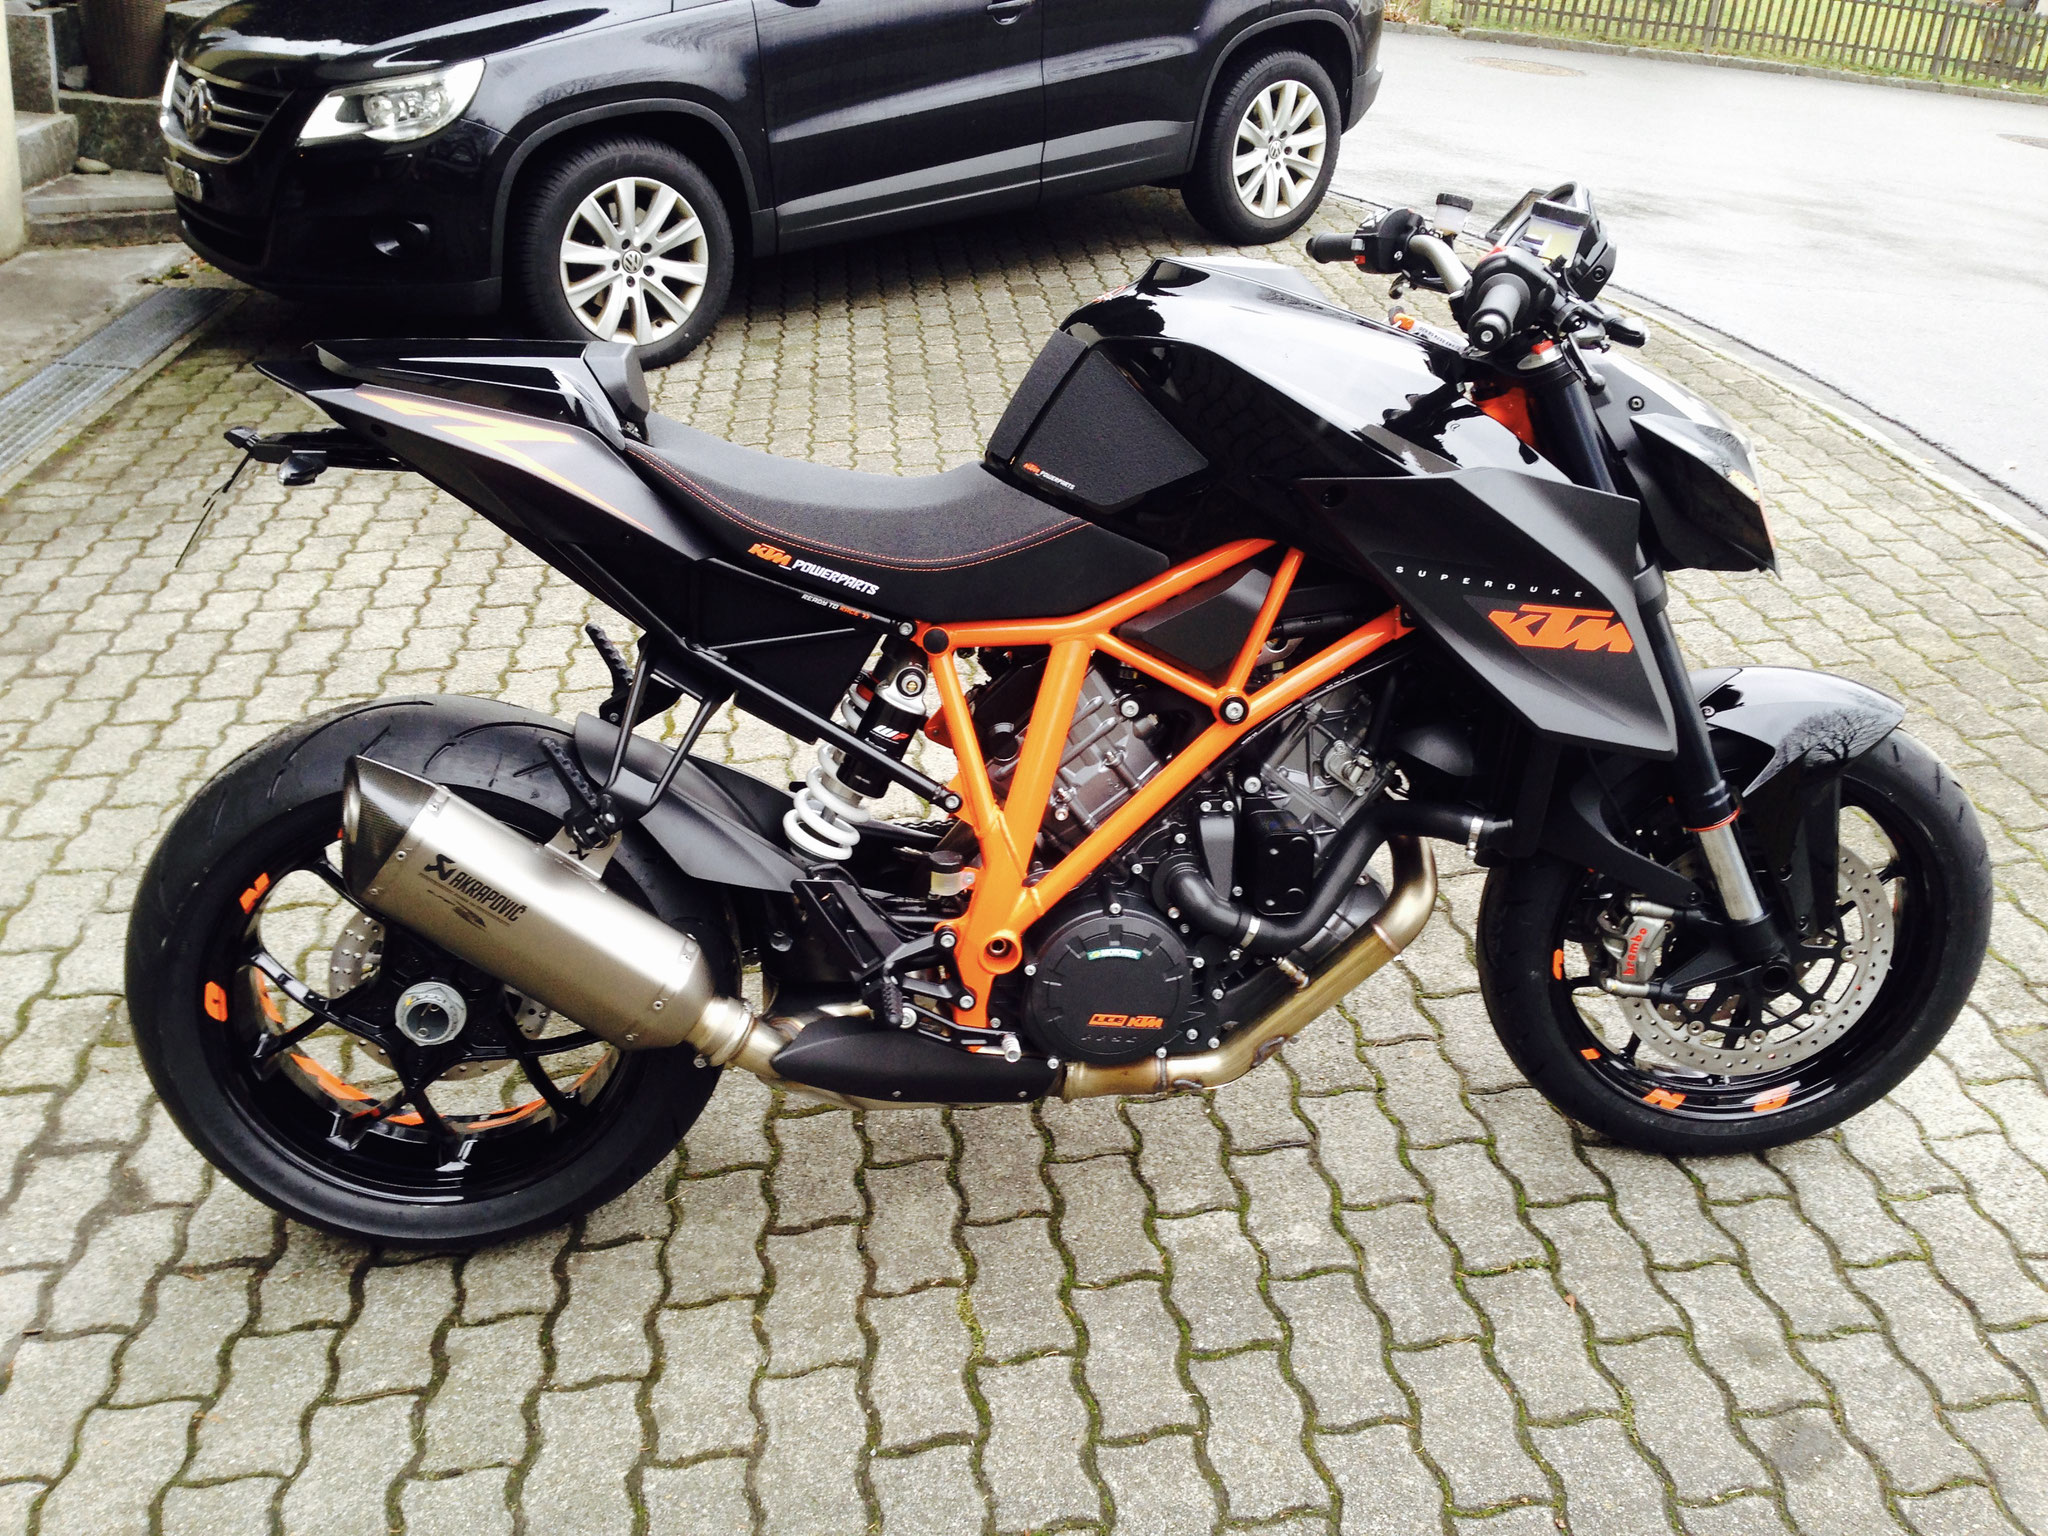 my KTM 1290 Super Duke, Jg 2014